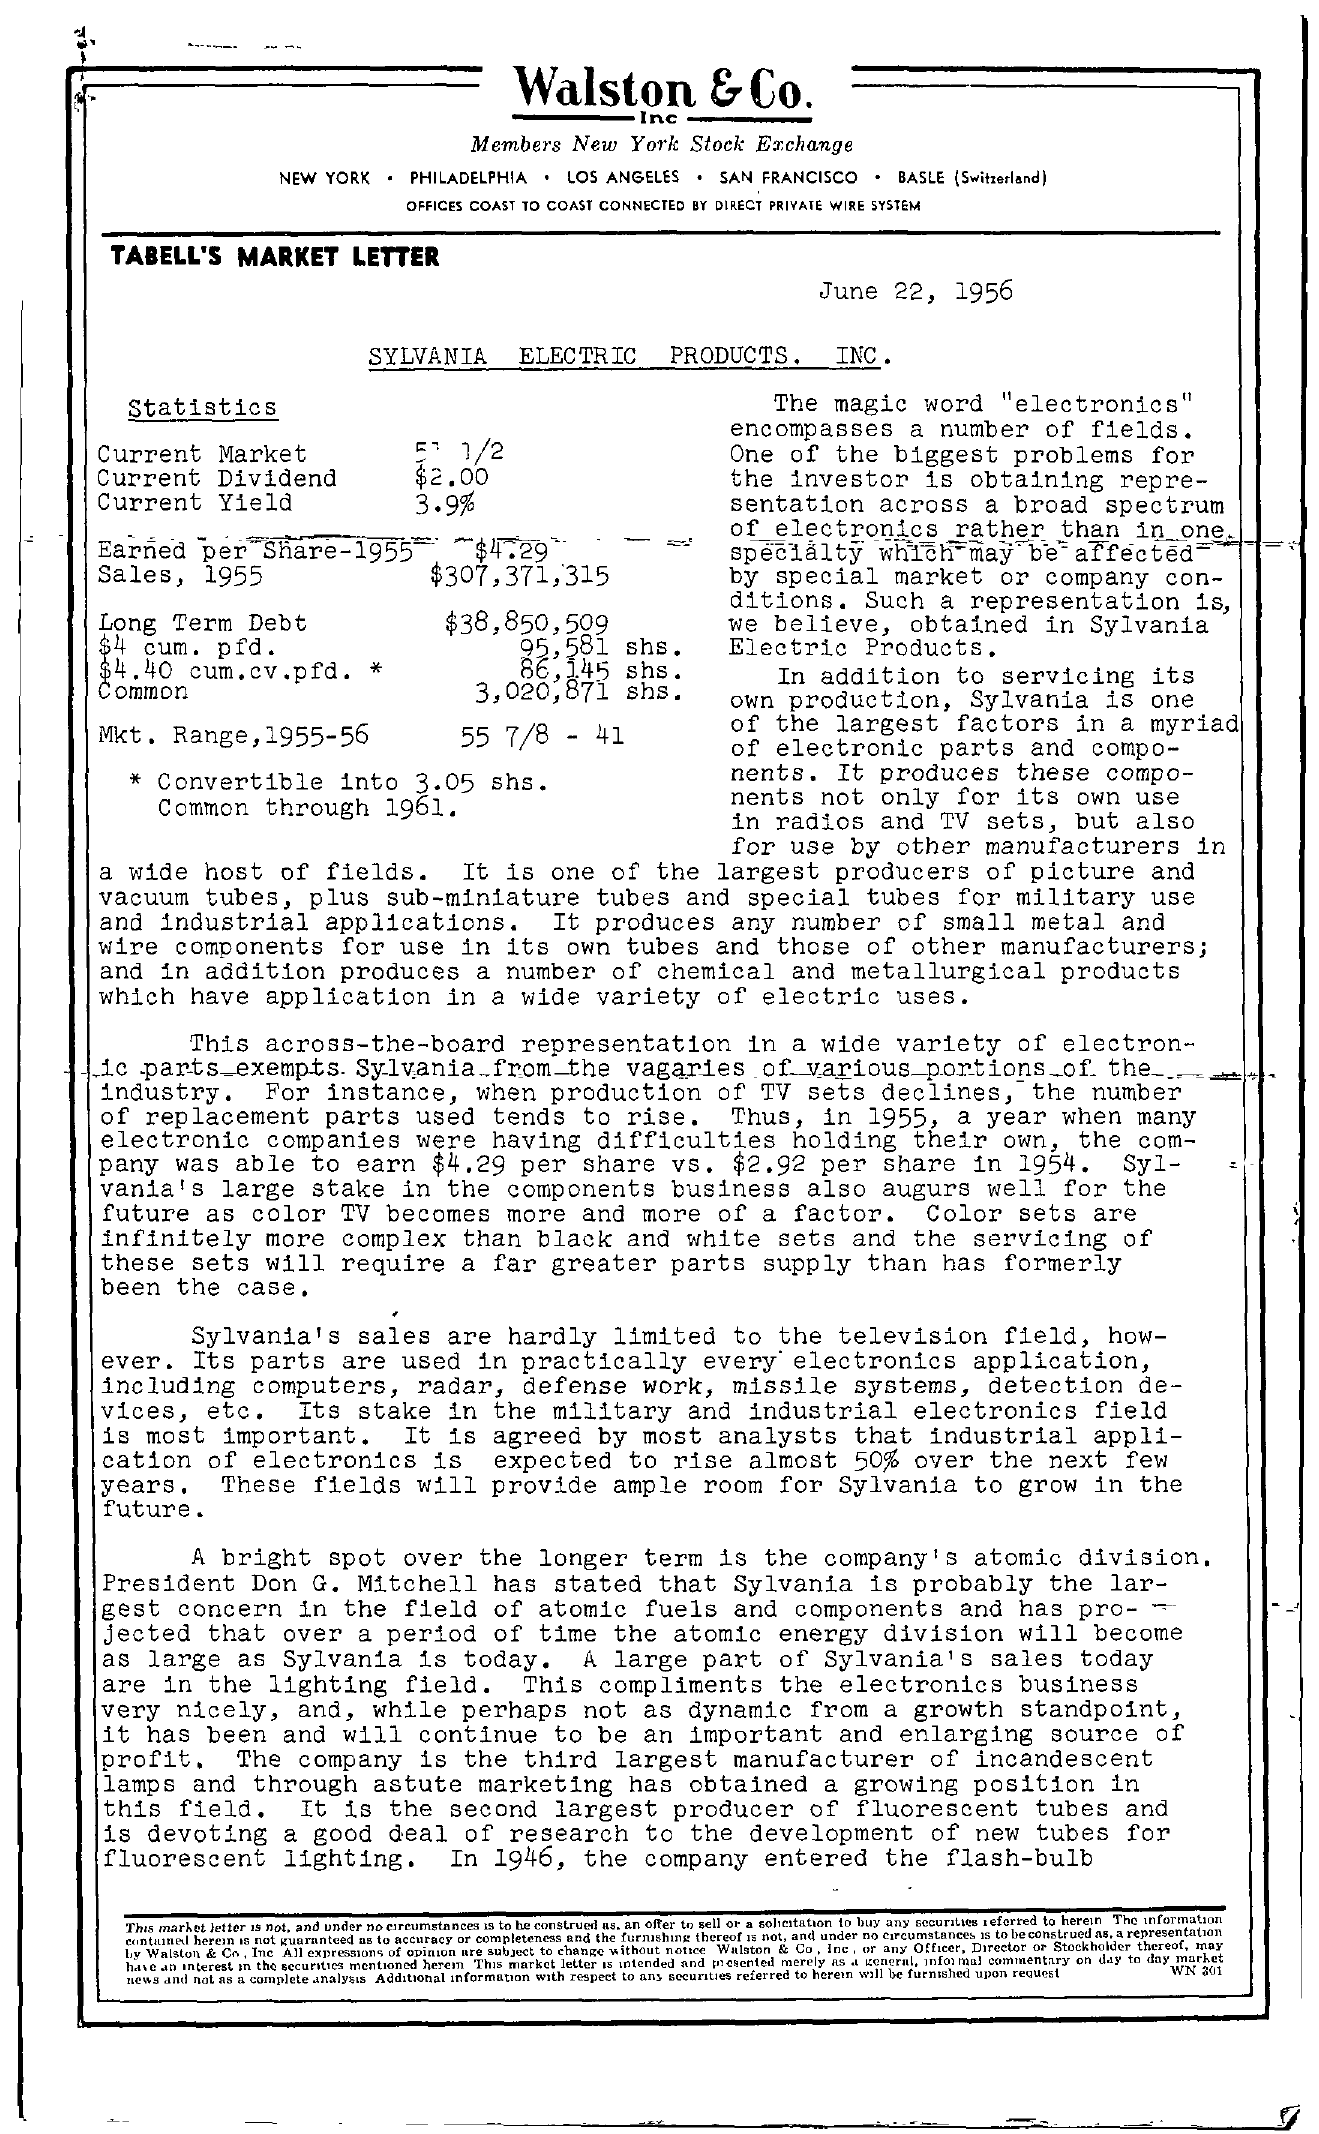 Tabell's Market Letter - June 22, 1956 page 1